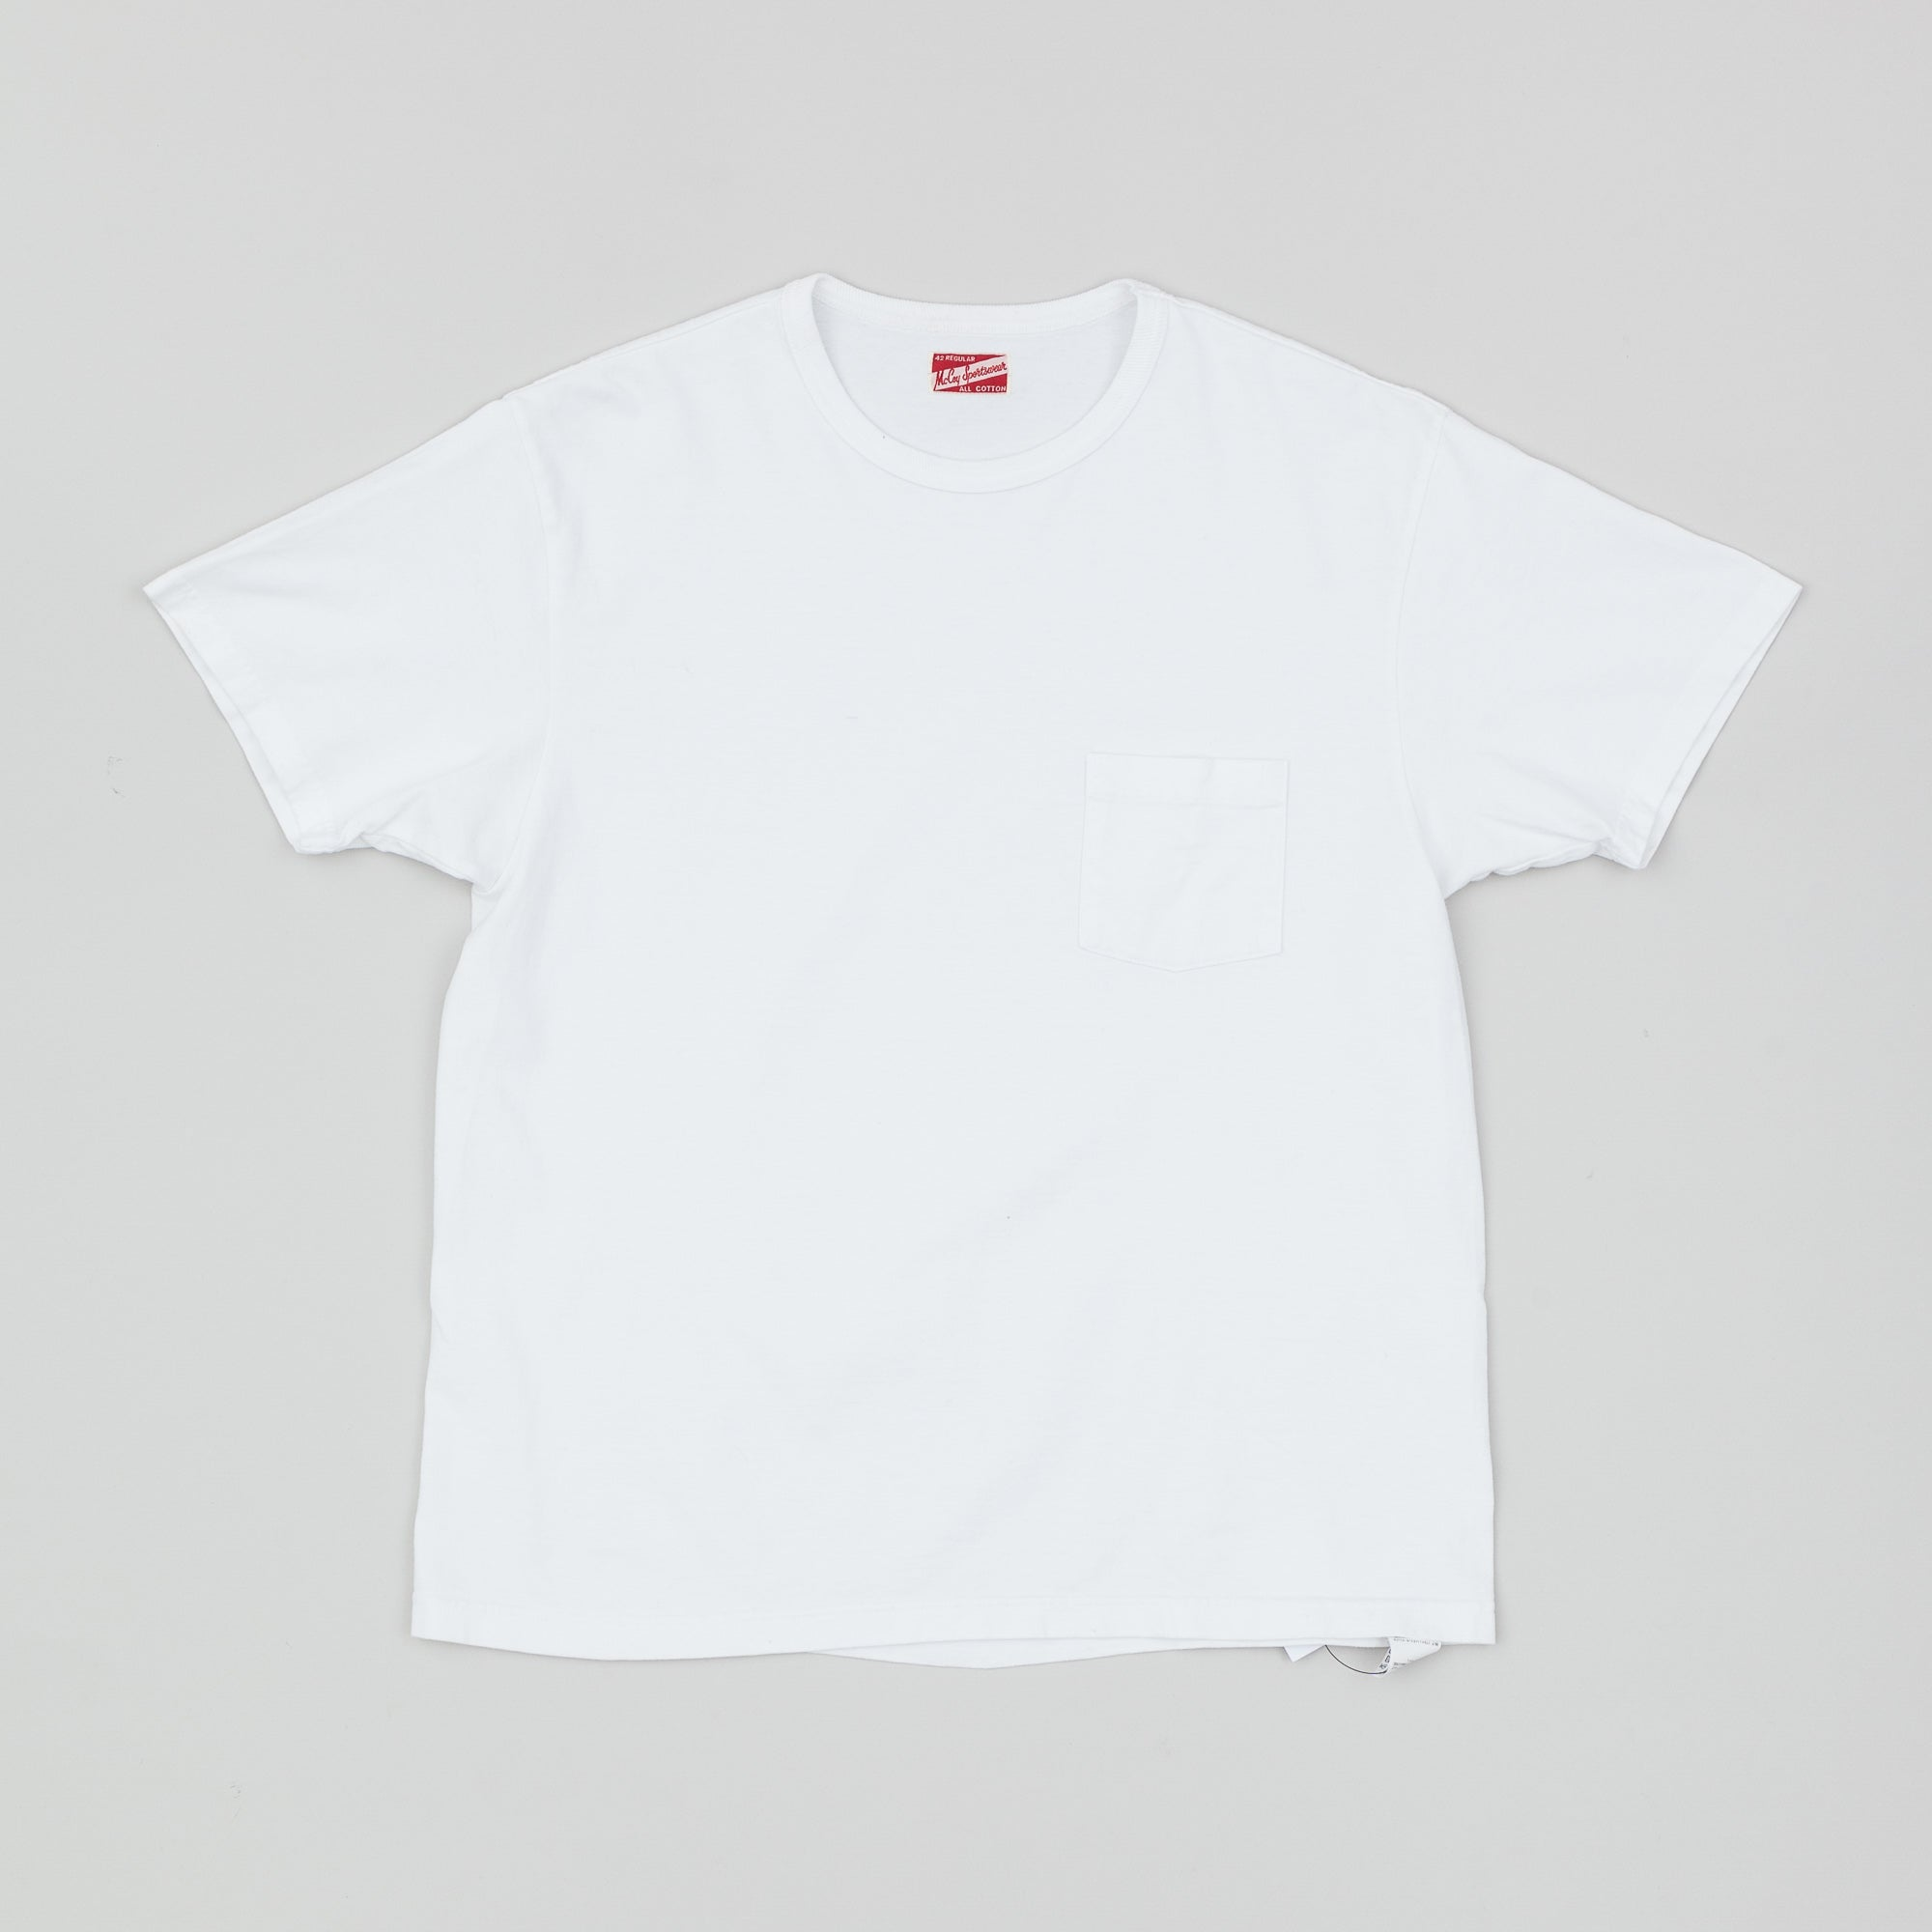 The Real McCoy's Joe McCoy Pocket Tee